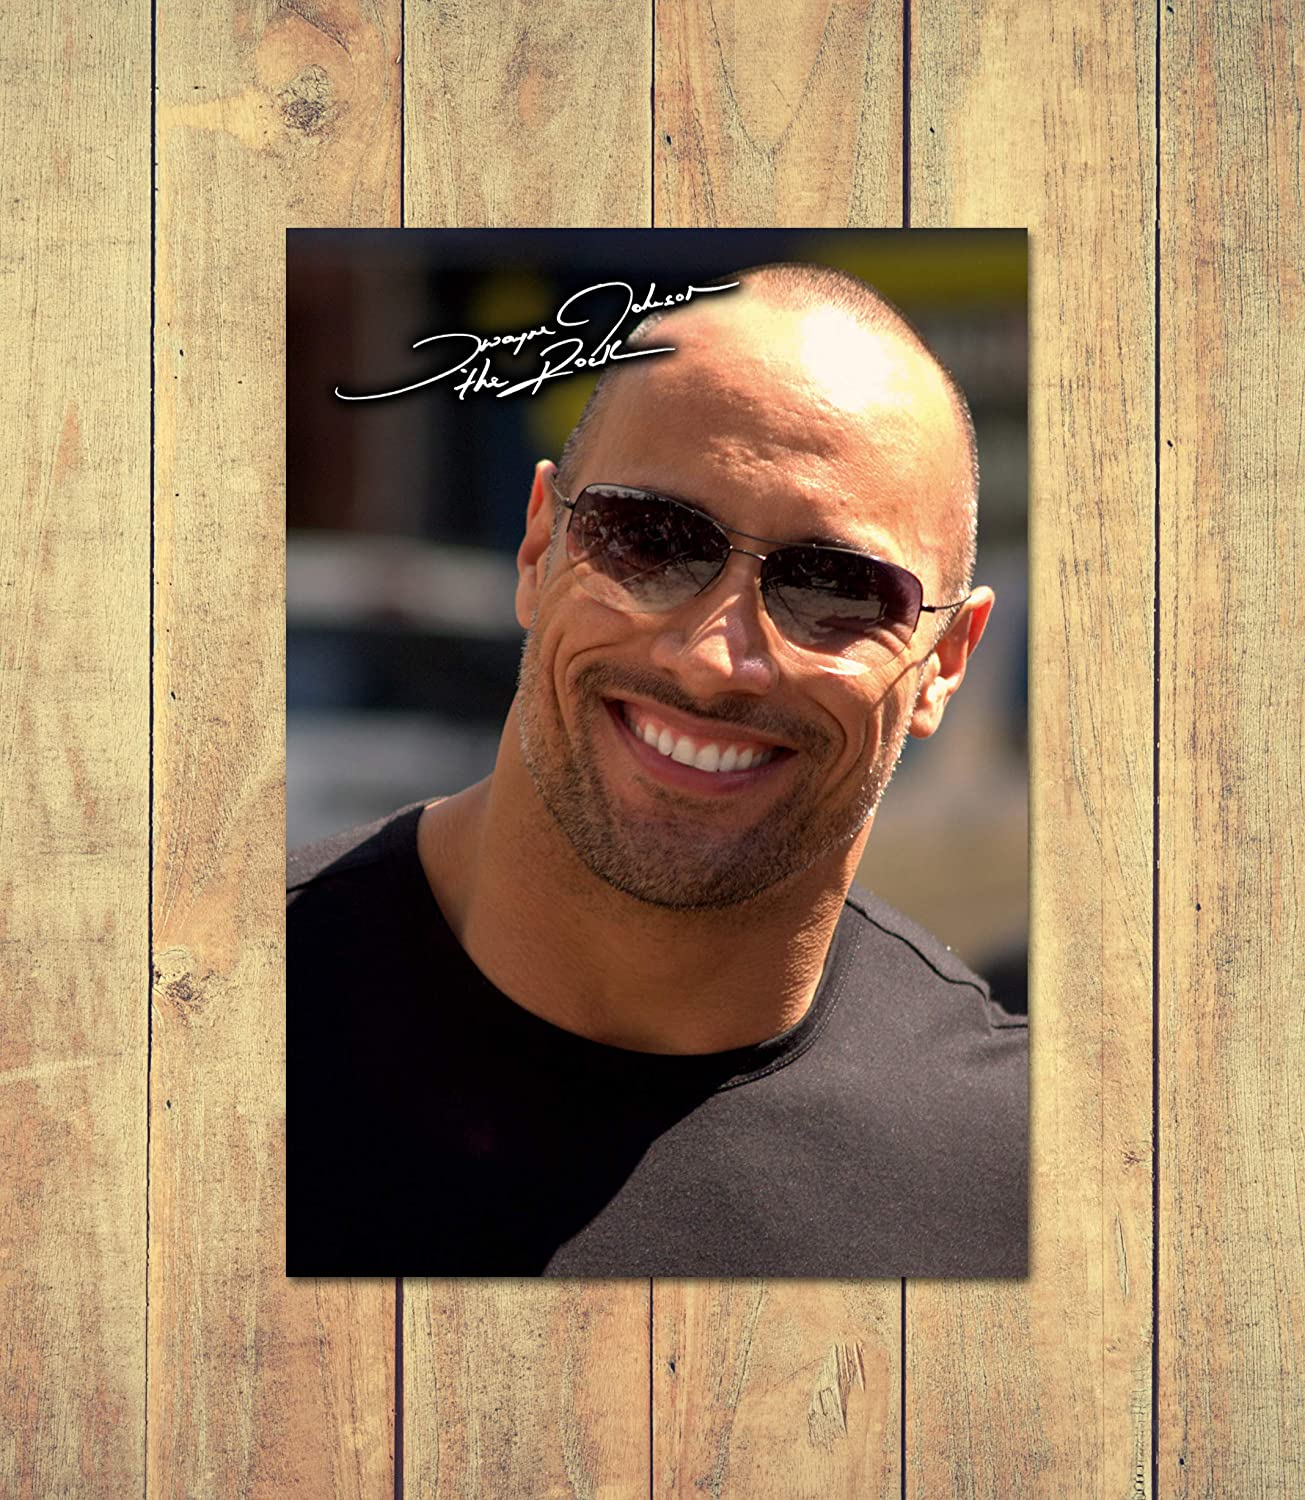 Personalised 210 x 297 mm The Rock 1 Dwayne Johnson High Gloss Printed Poster A4